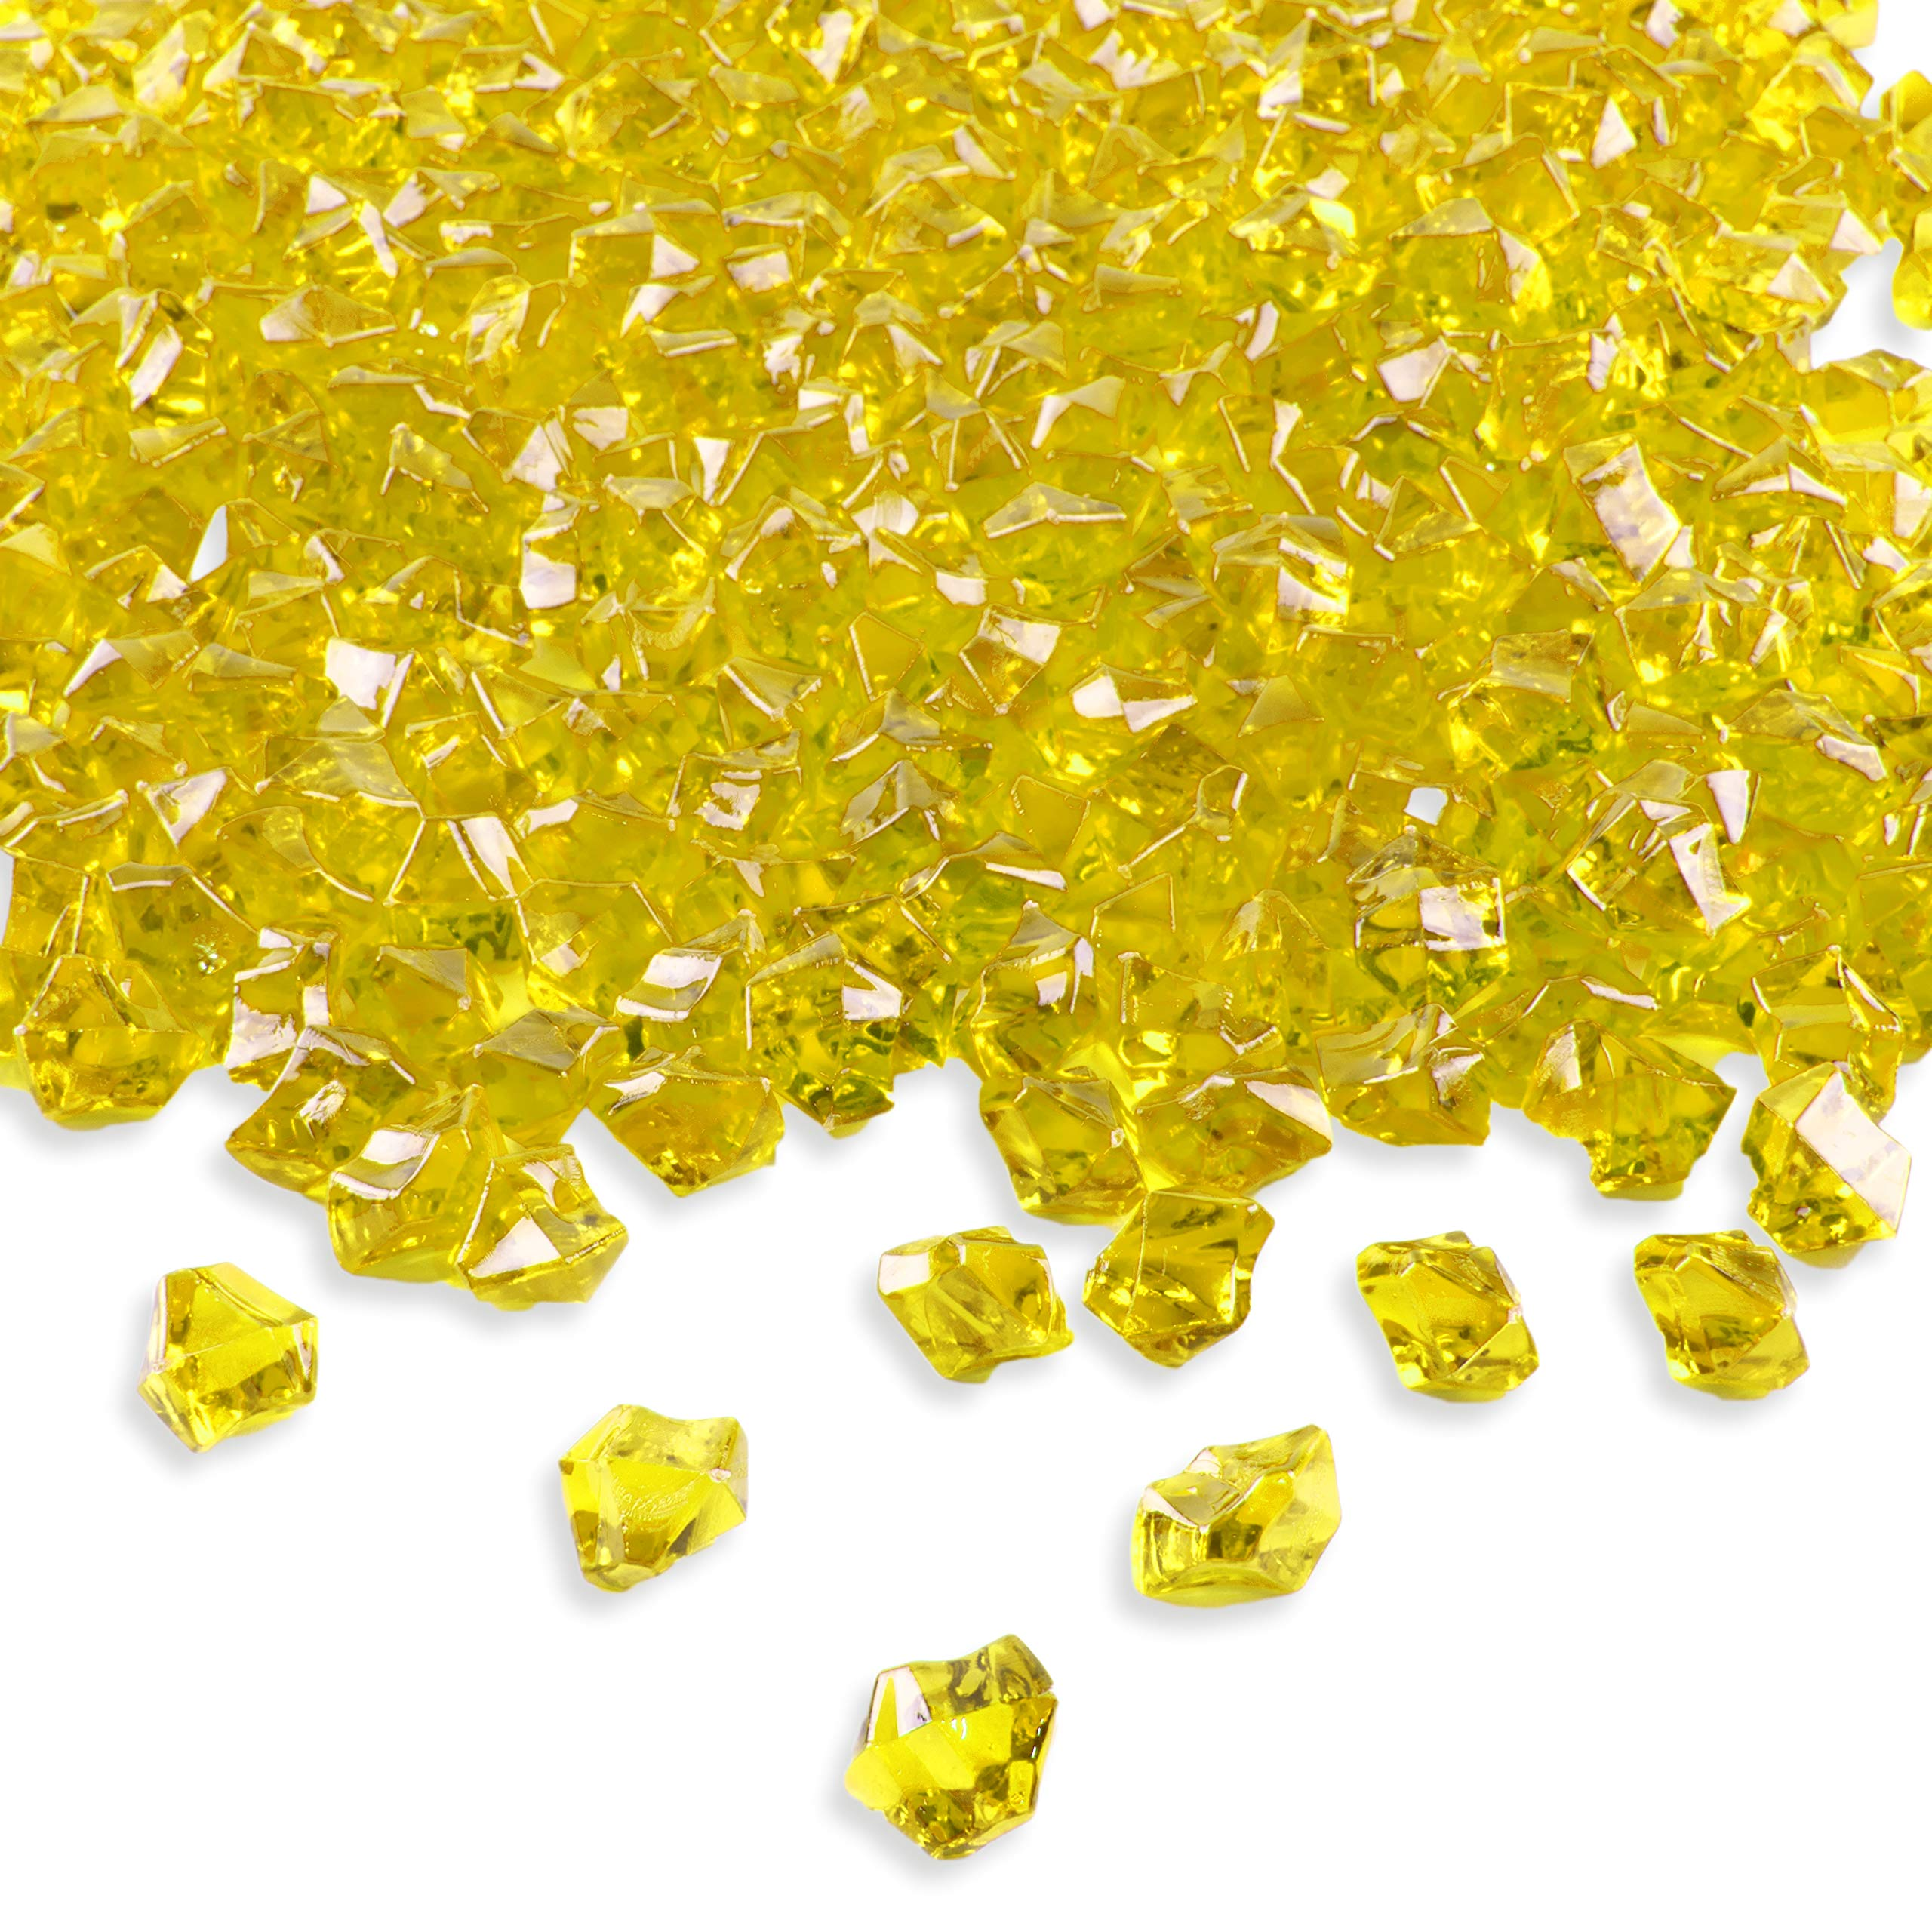 Super Z Outlet Acrylic Color Ice Rock Crystals Treasure Gems for Table Scatters, Vase Fillers, Event, Wedding, Birthday Decoration Favor, Arts & Crafts (385 Pieces) (Yellow) by Super Z Outlet